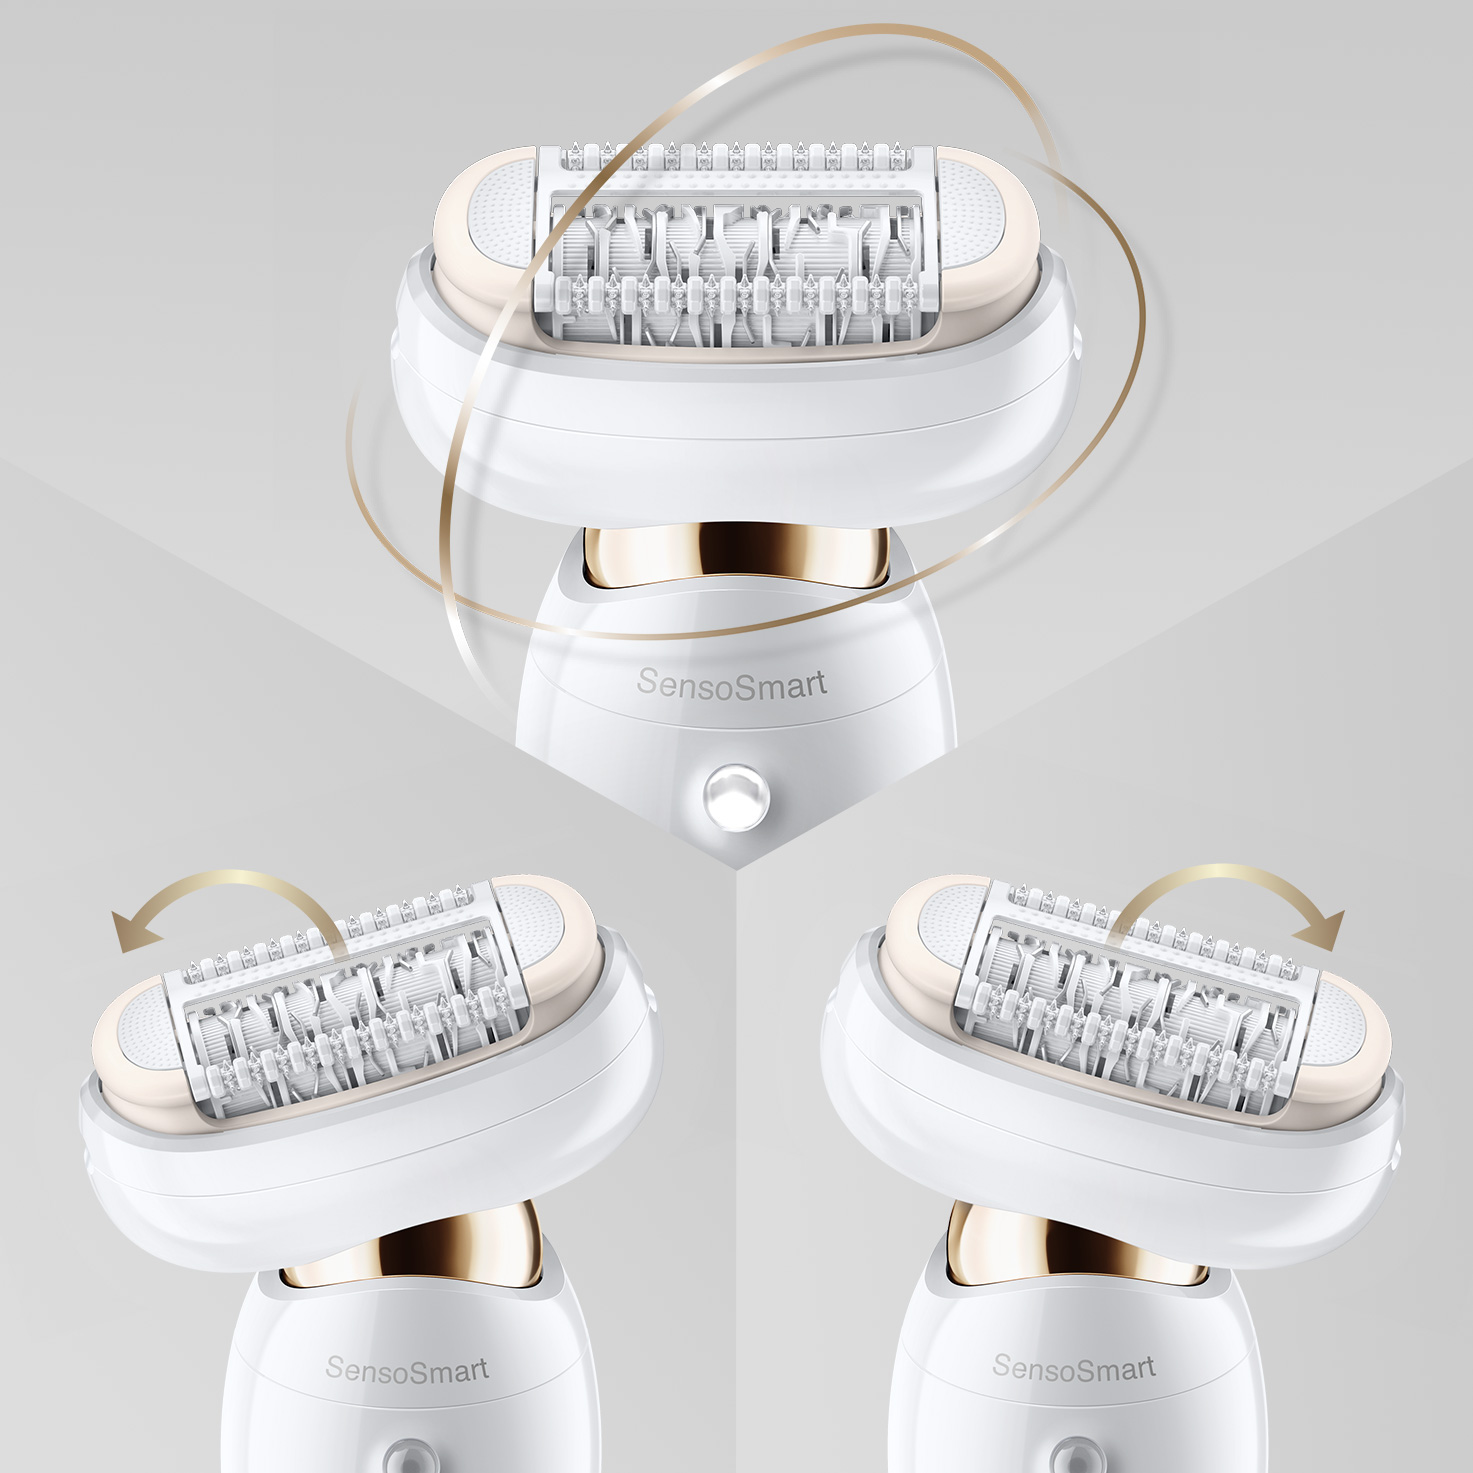 Silk-épil 9 Flex epilator, Design Edition